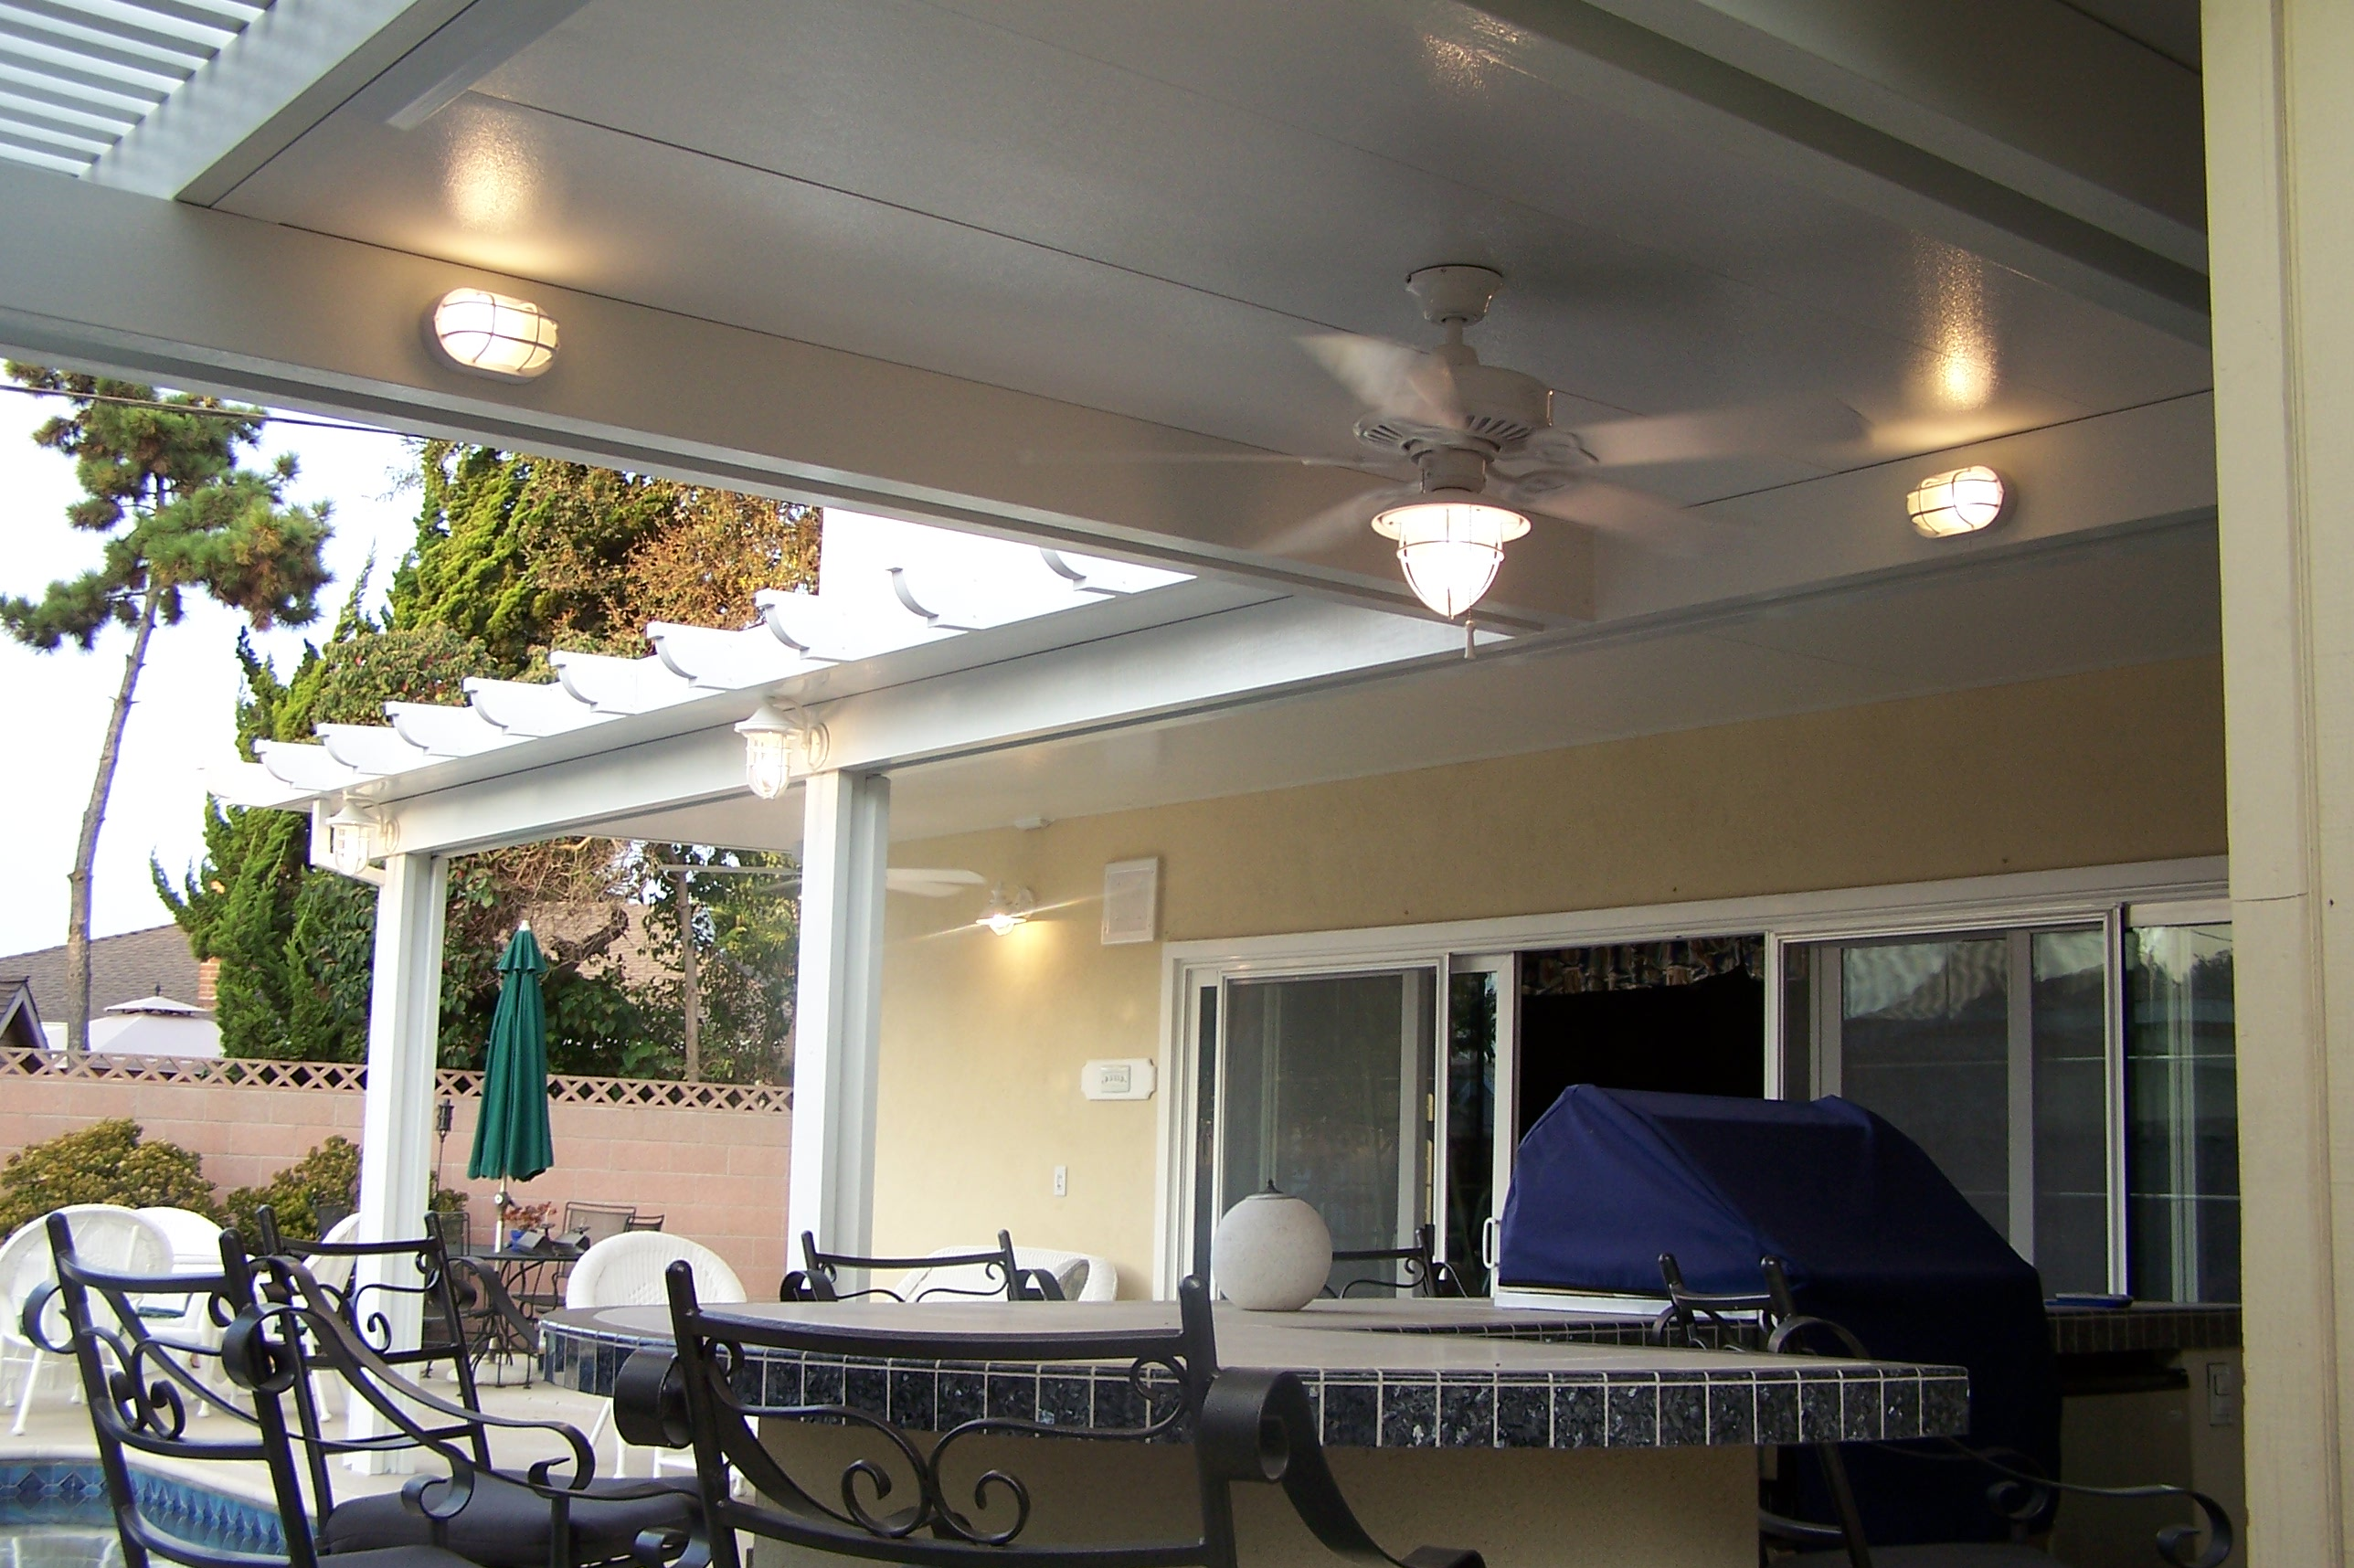 Vinyl Panels For Under Decks Under Deck Lattice With A